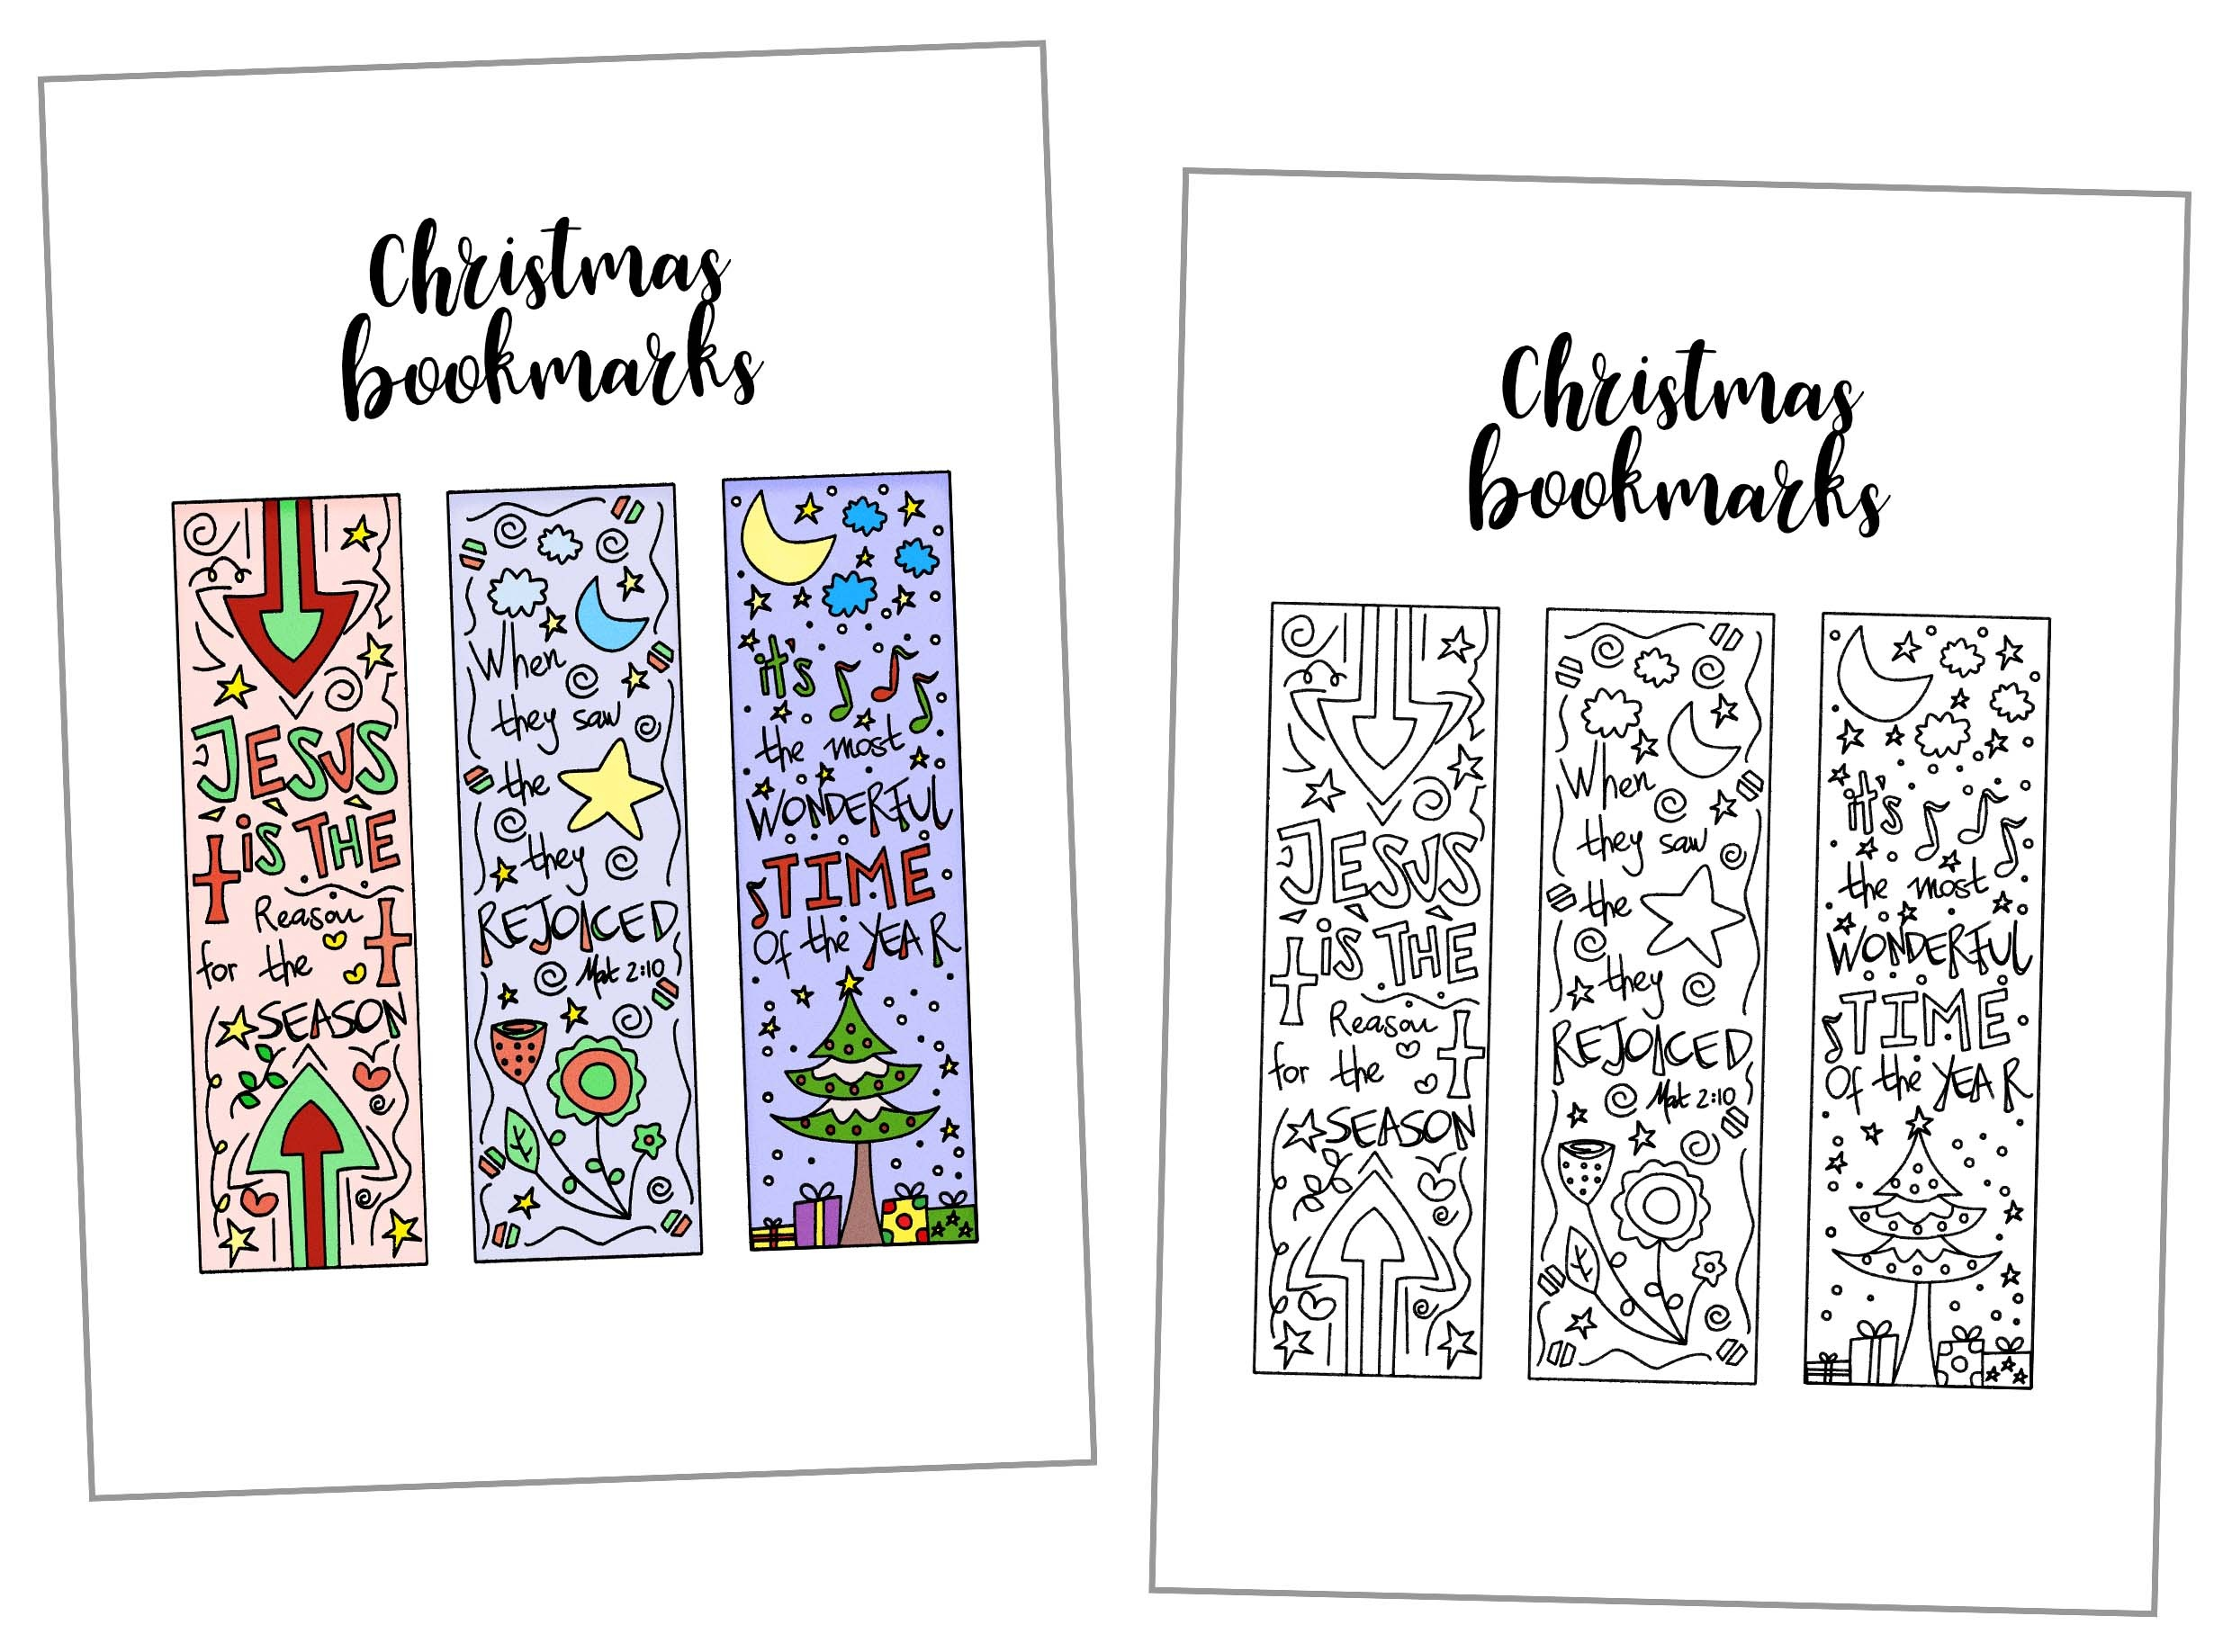 Coloring Christmas Bookmarks Free Printable - Free Printable Baby Bookmarks